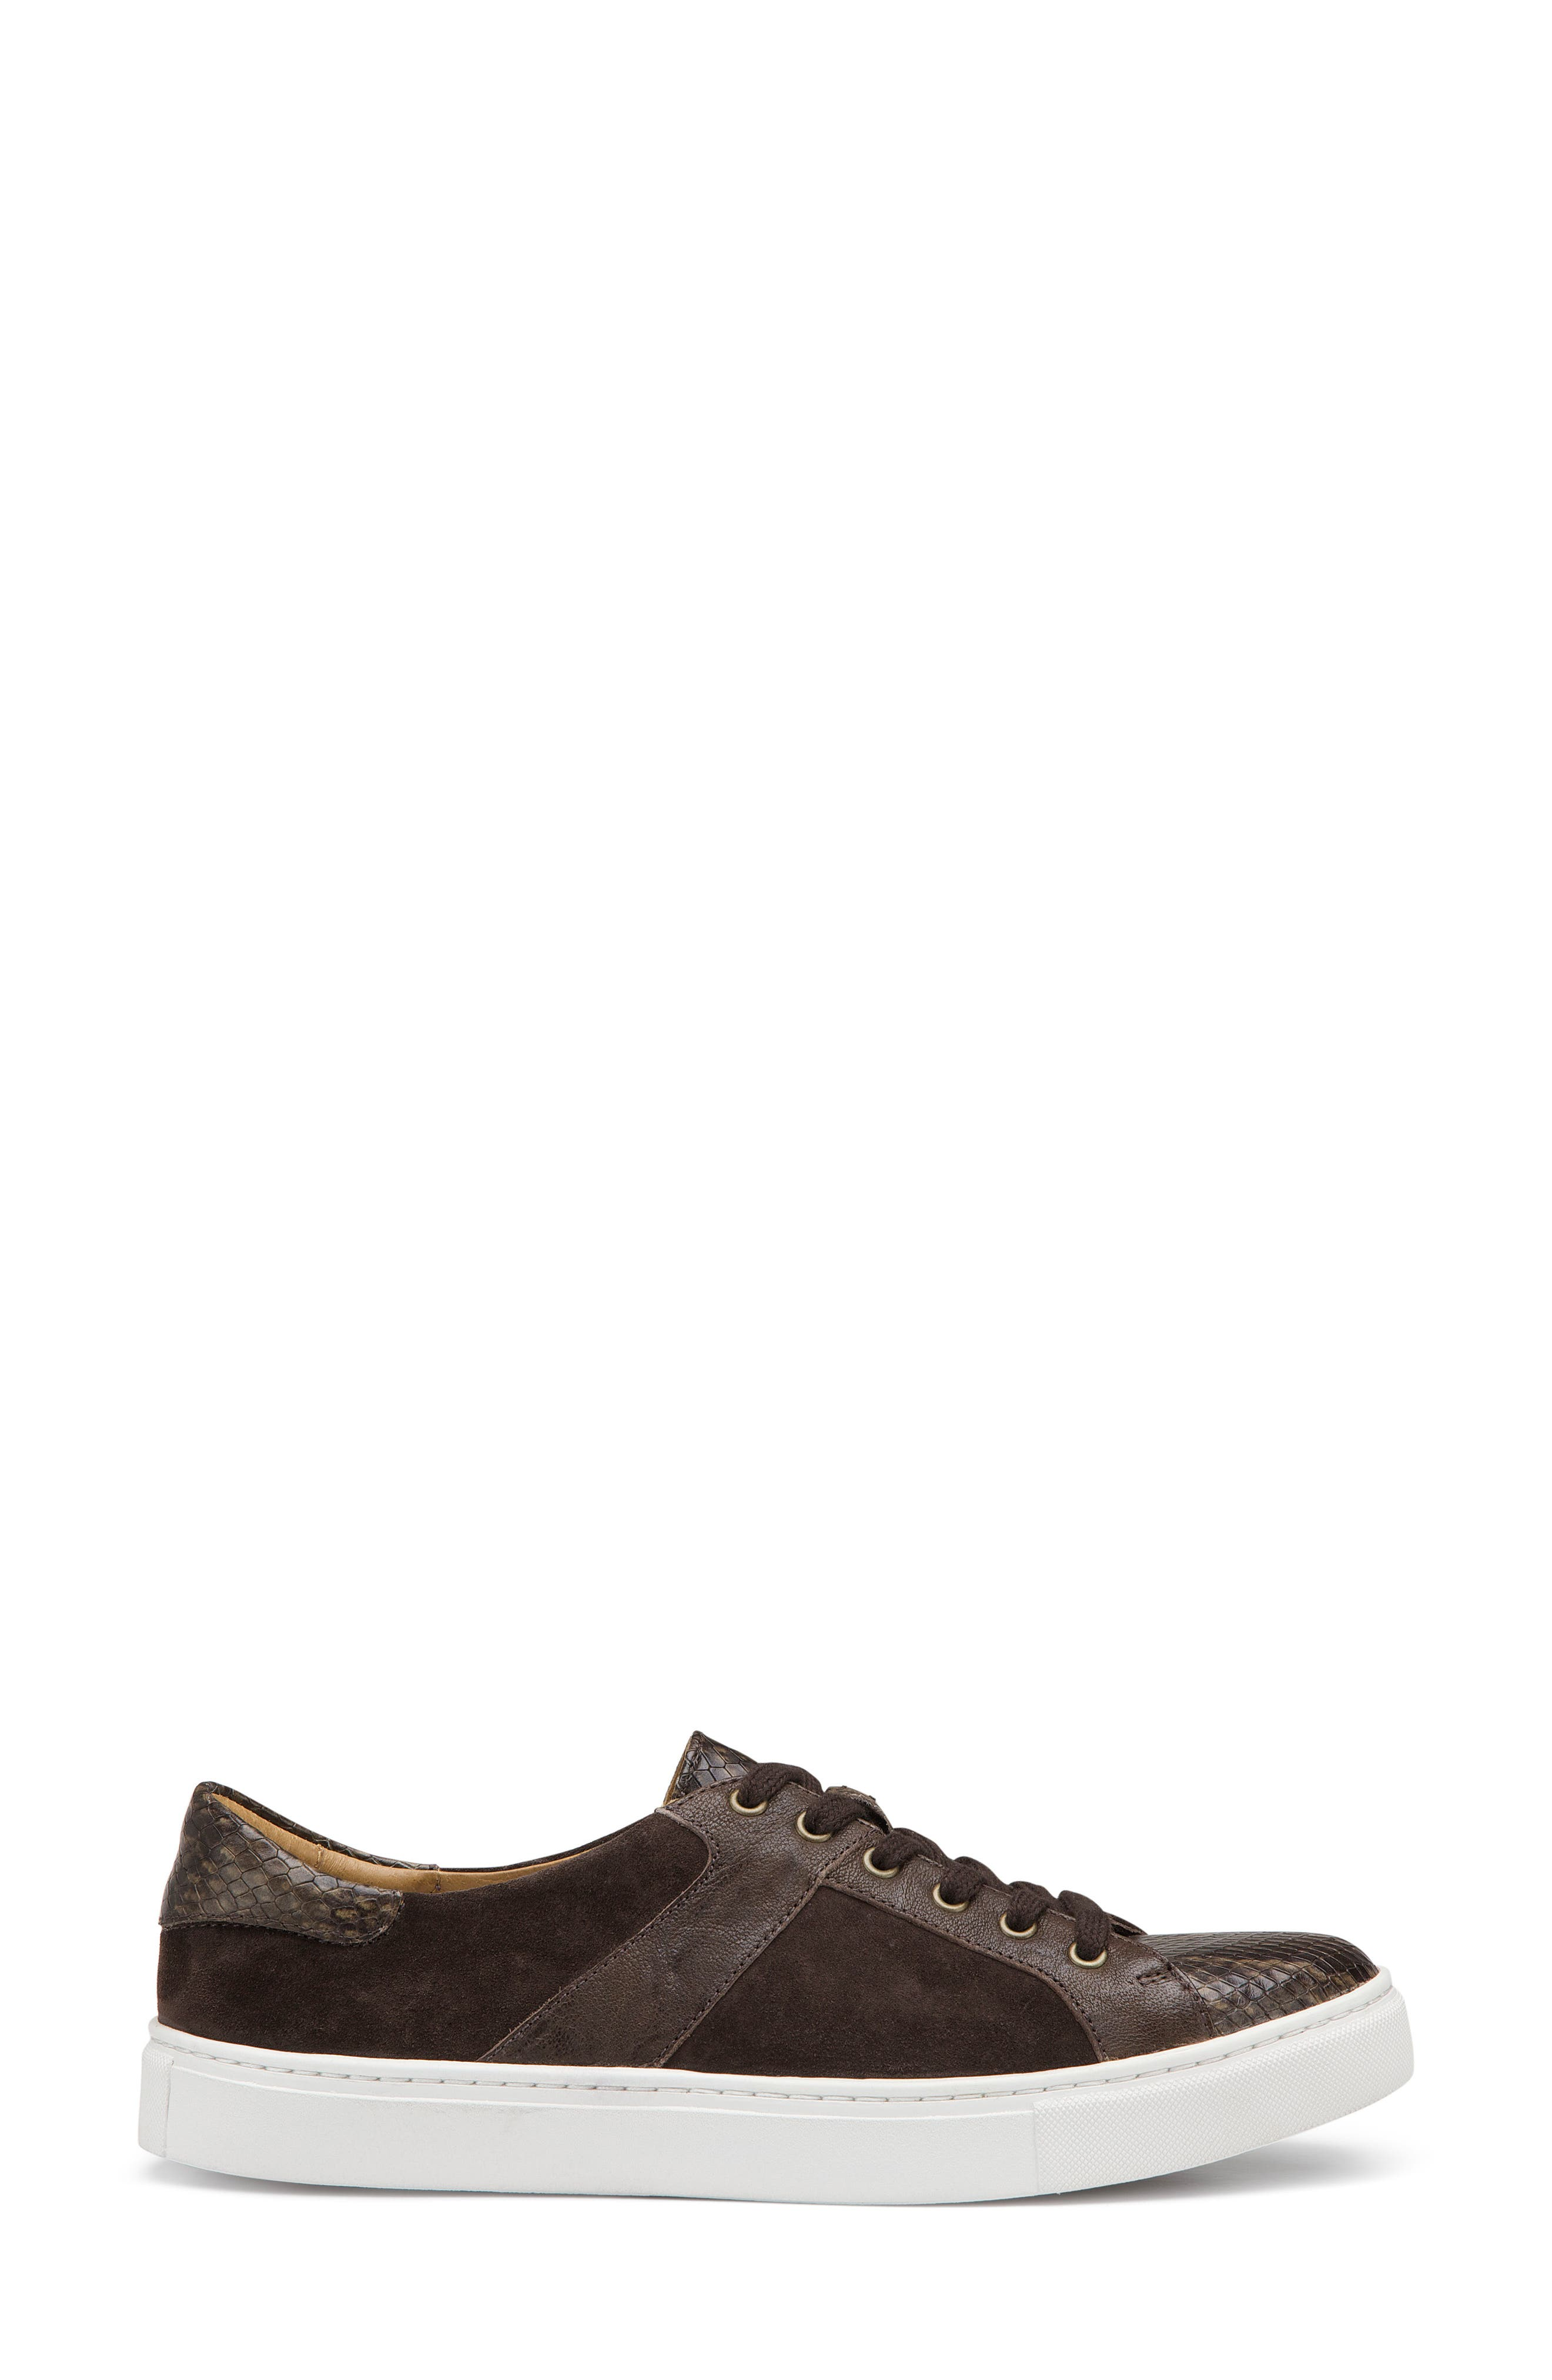 TRASK, Lindsey Sneaker, Alternate thumbnail 3, color, BROWN PRINT LEATHER